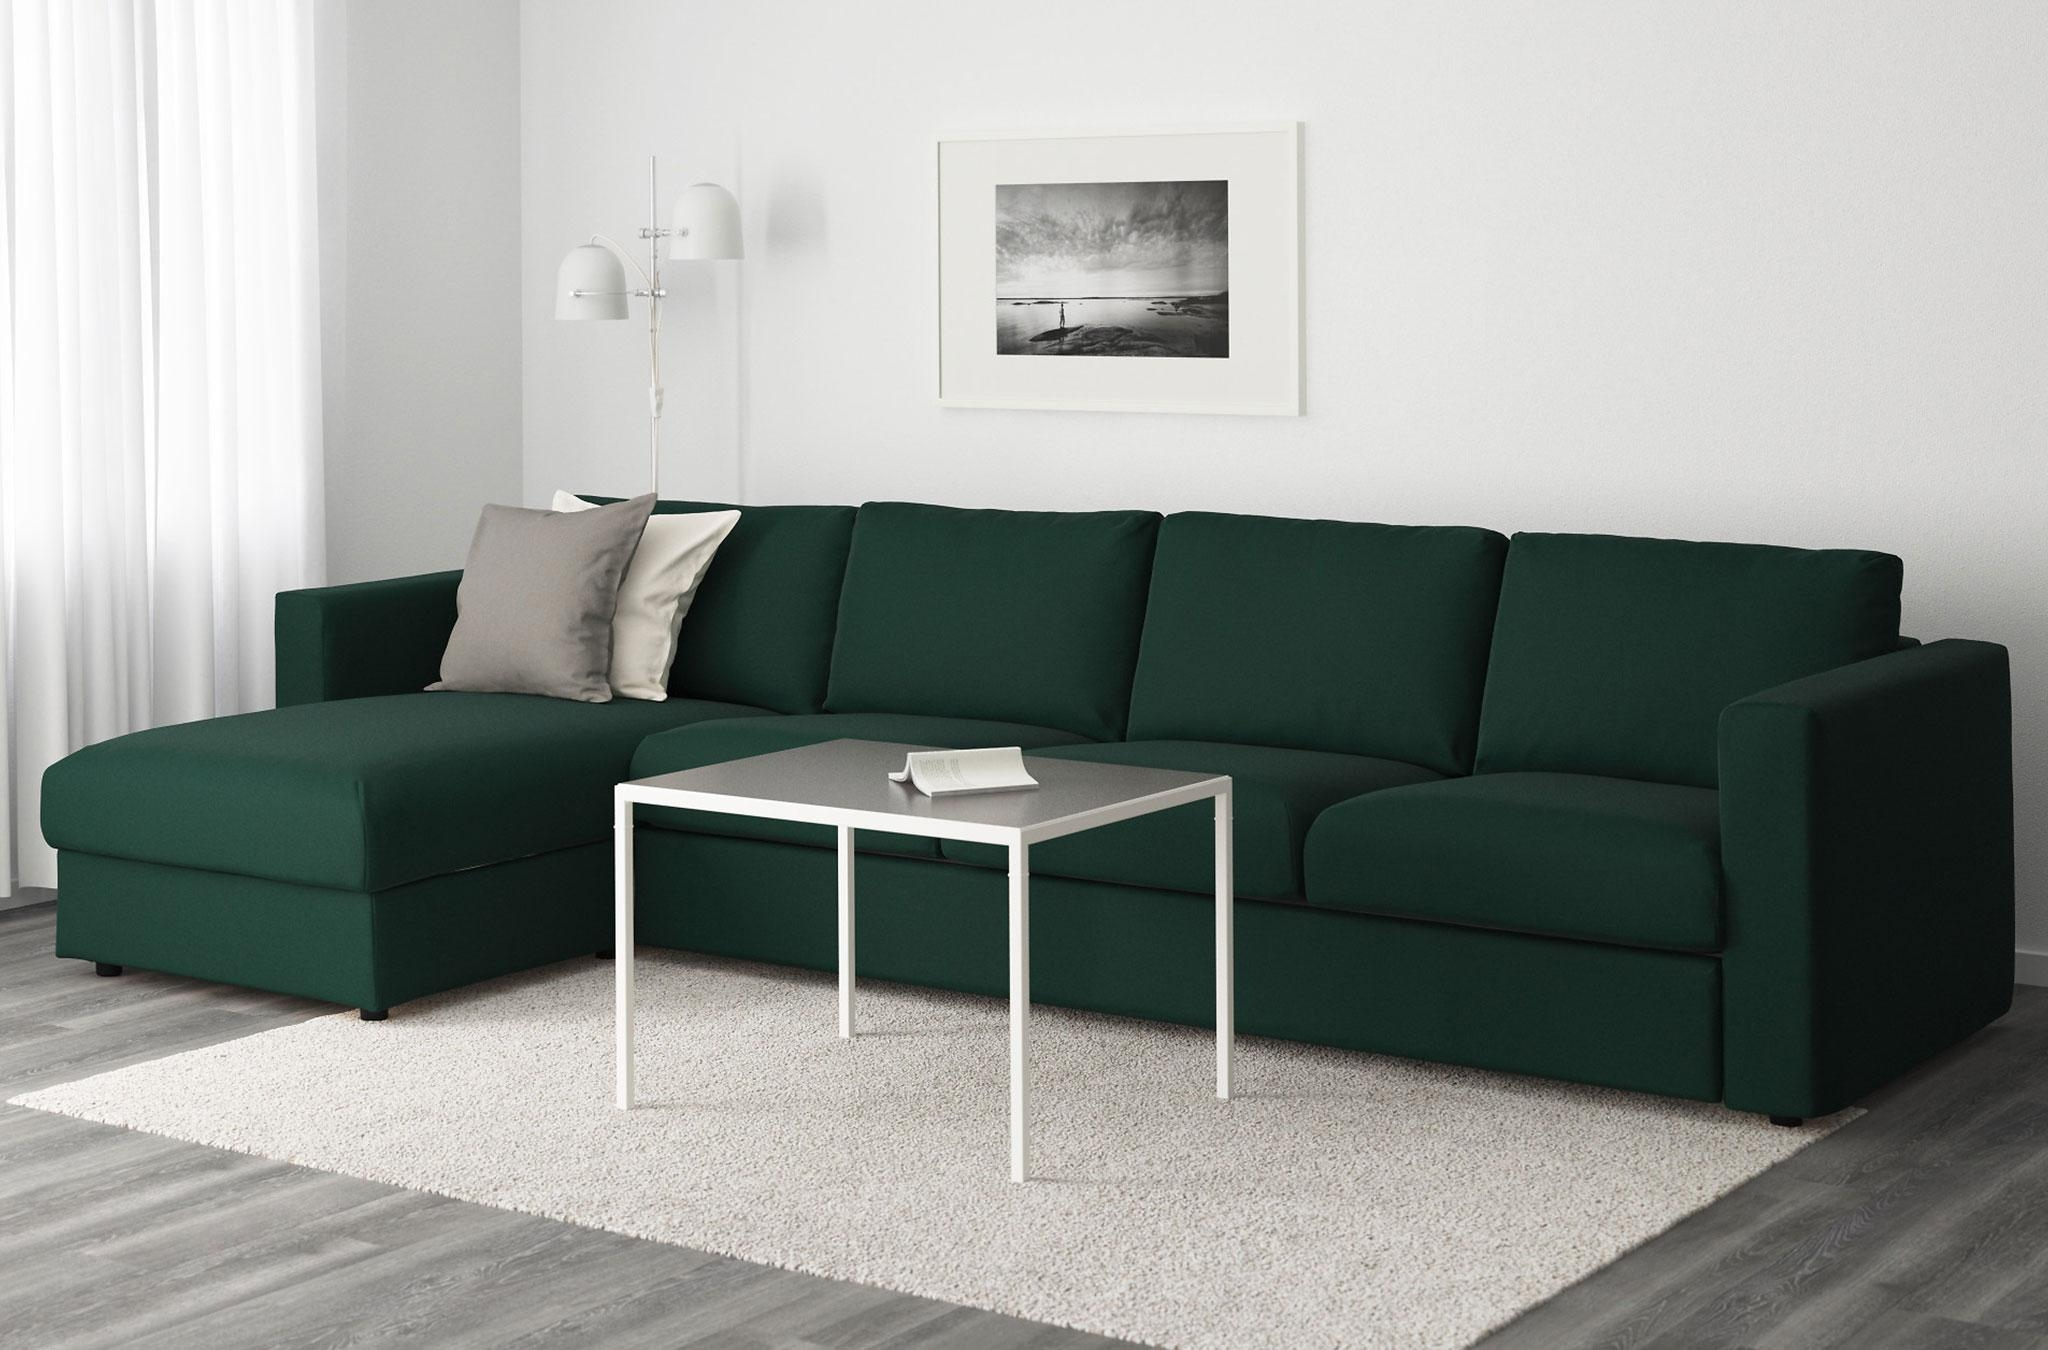 ikea living room furniture uk 2018 modular sofas sofa ideas 23882